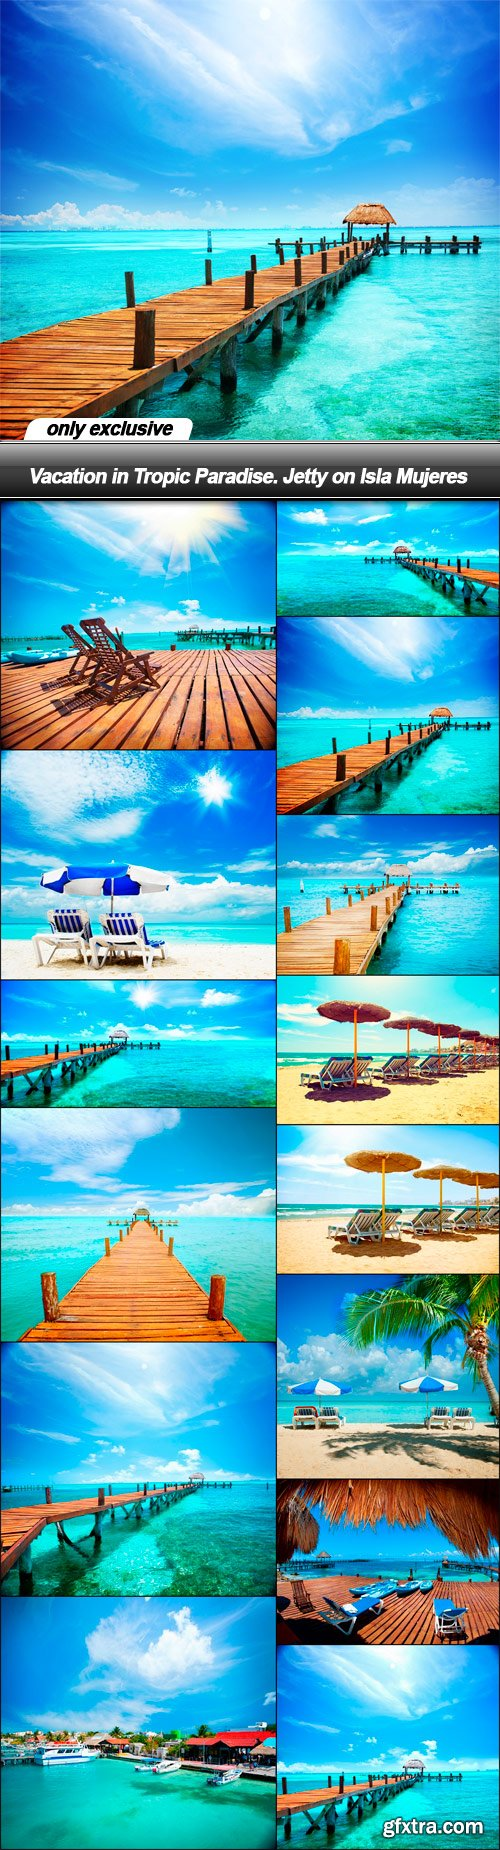 Vacation in Tropic Paradise. Jetty on Isla Mujeres - 14 UHQ JPEG